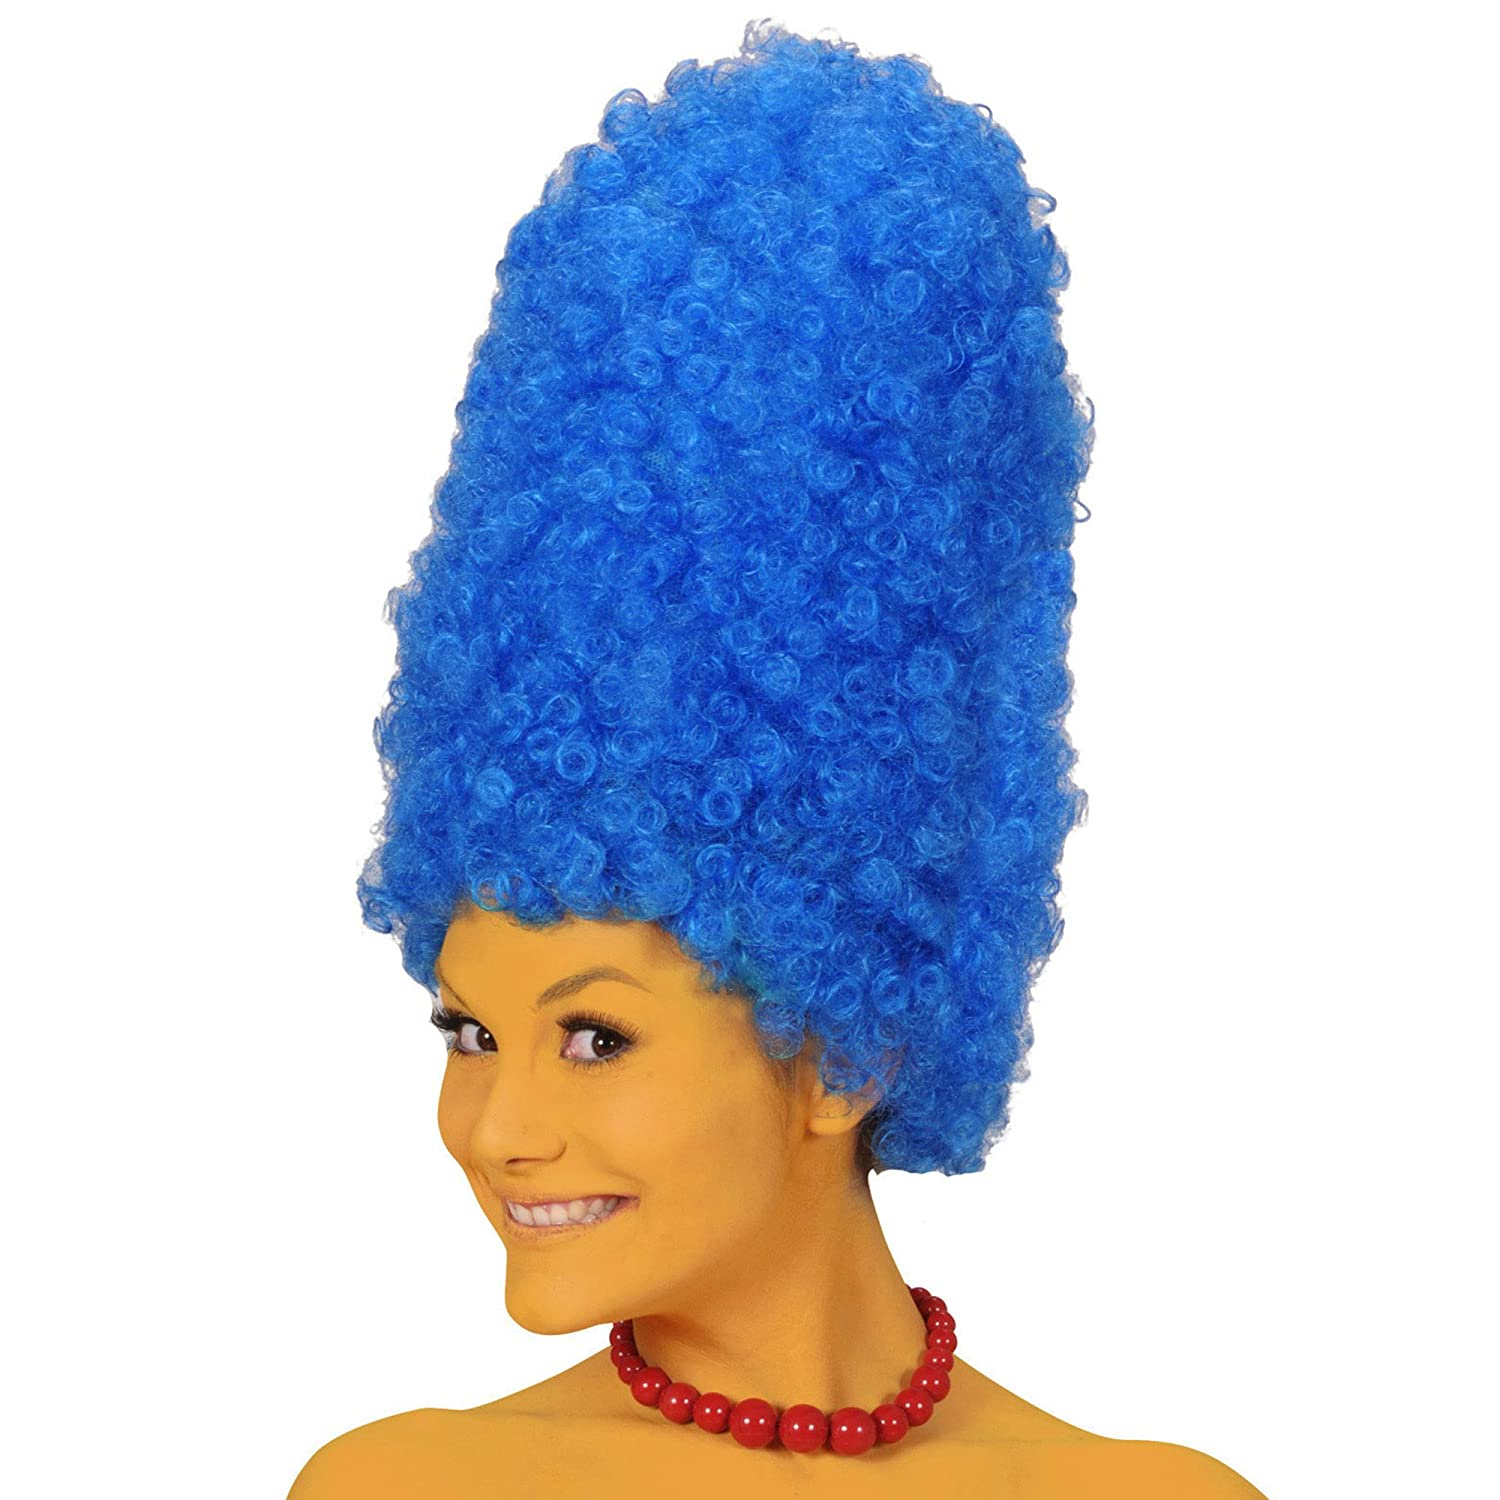 Tall Blue Beehive Marge Wig (peluca)https://amzn.to/2QAPHEN